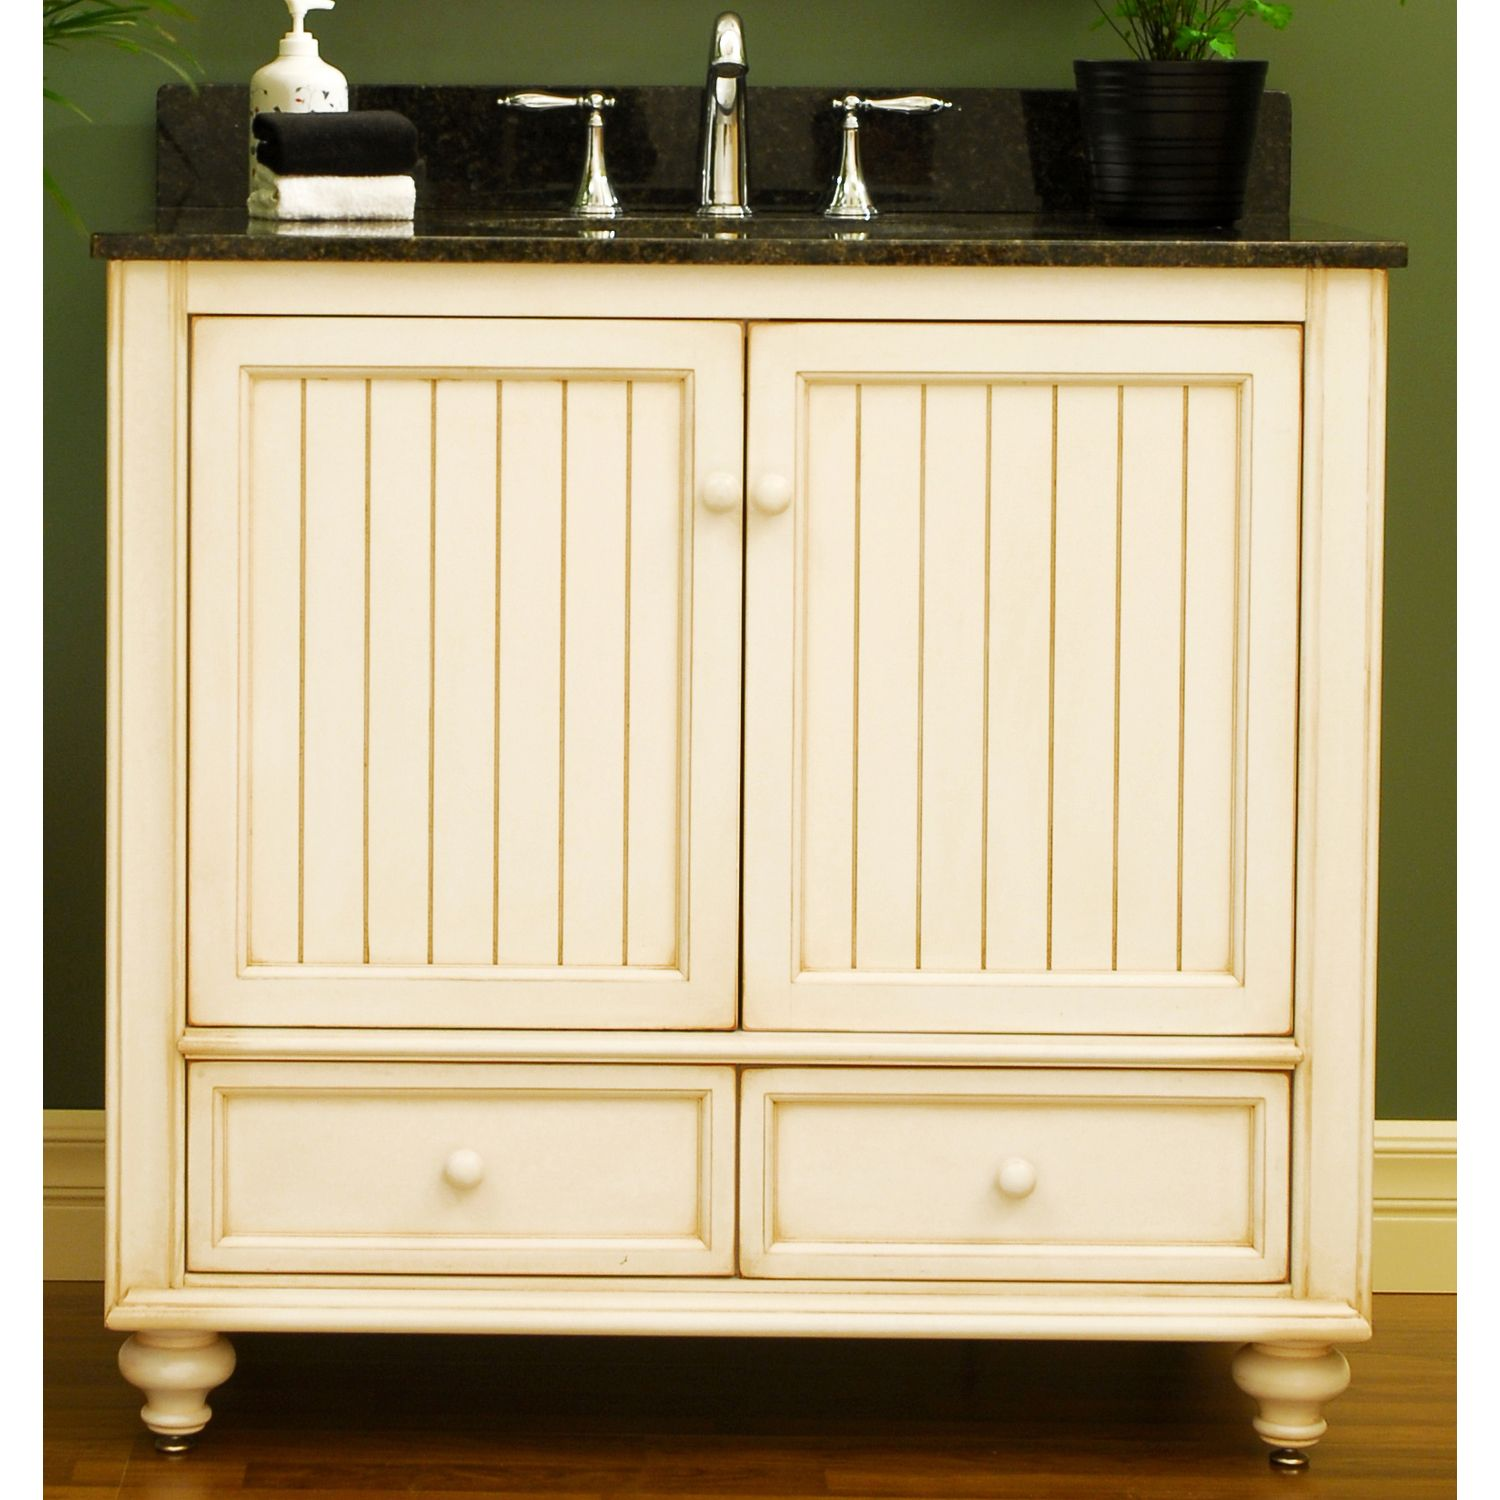 Wooden bathroom cabinet - Cottage Style 36 Wood Bathroom Vanity Cabinet From